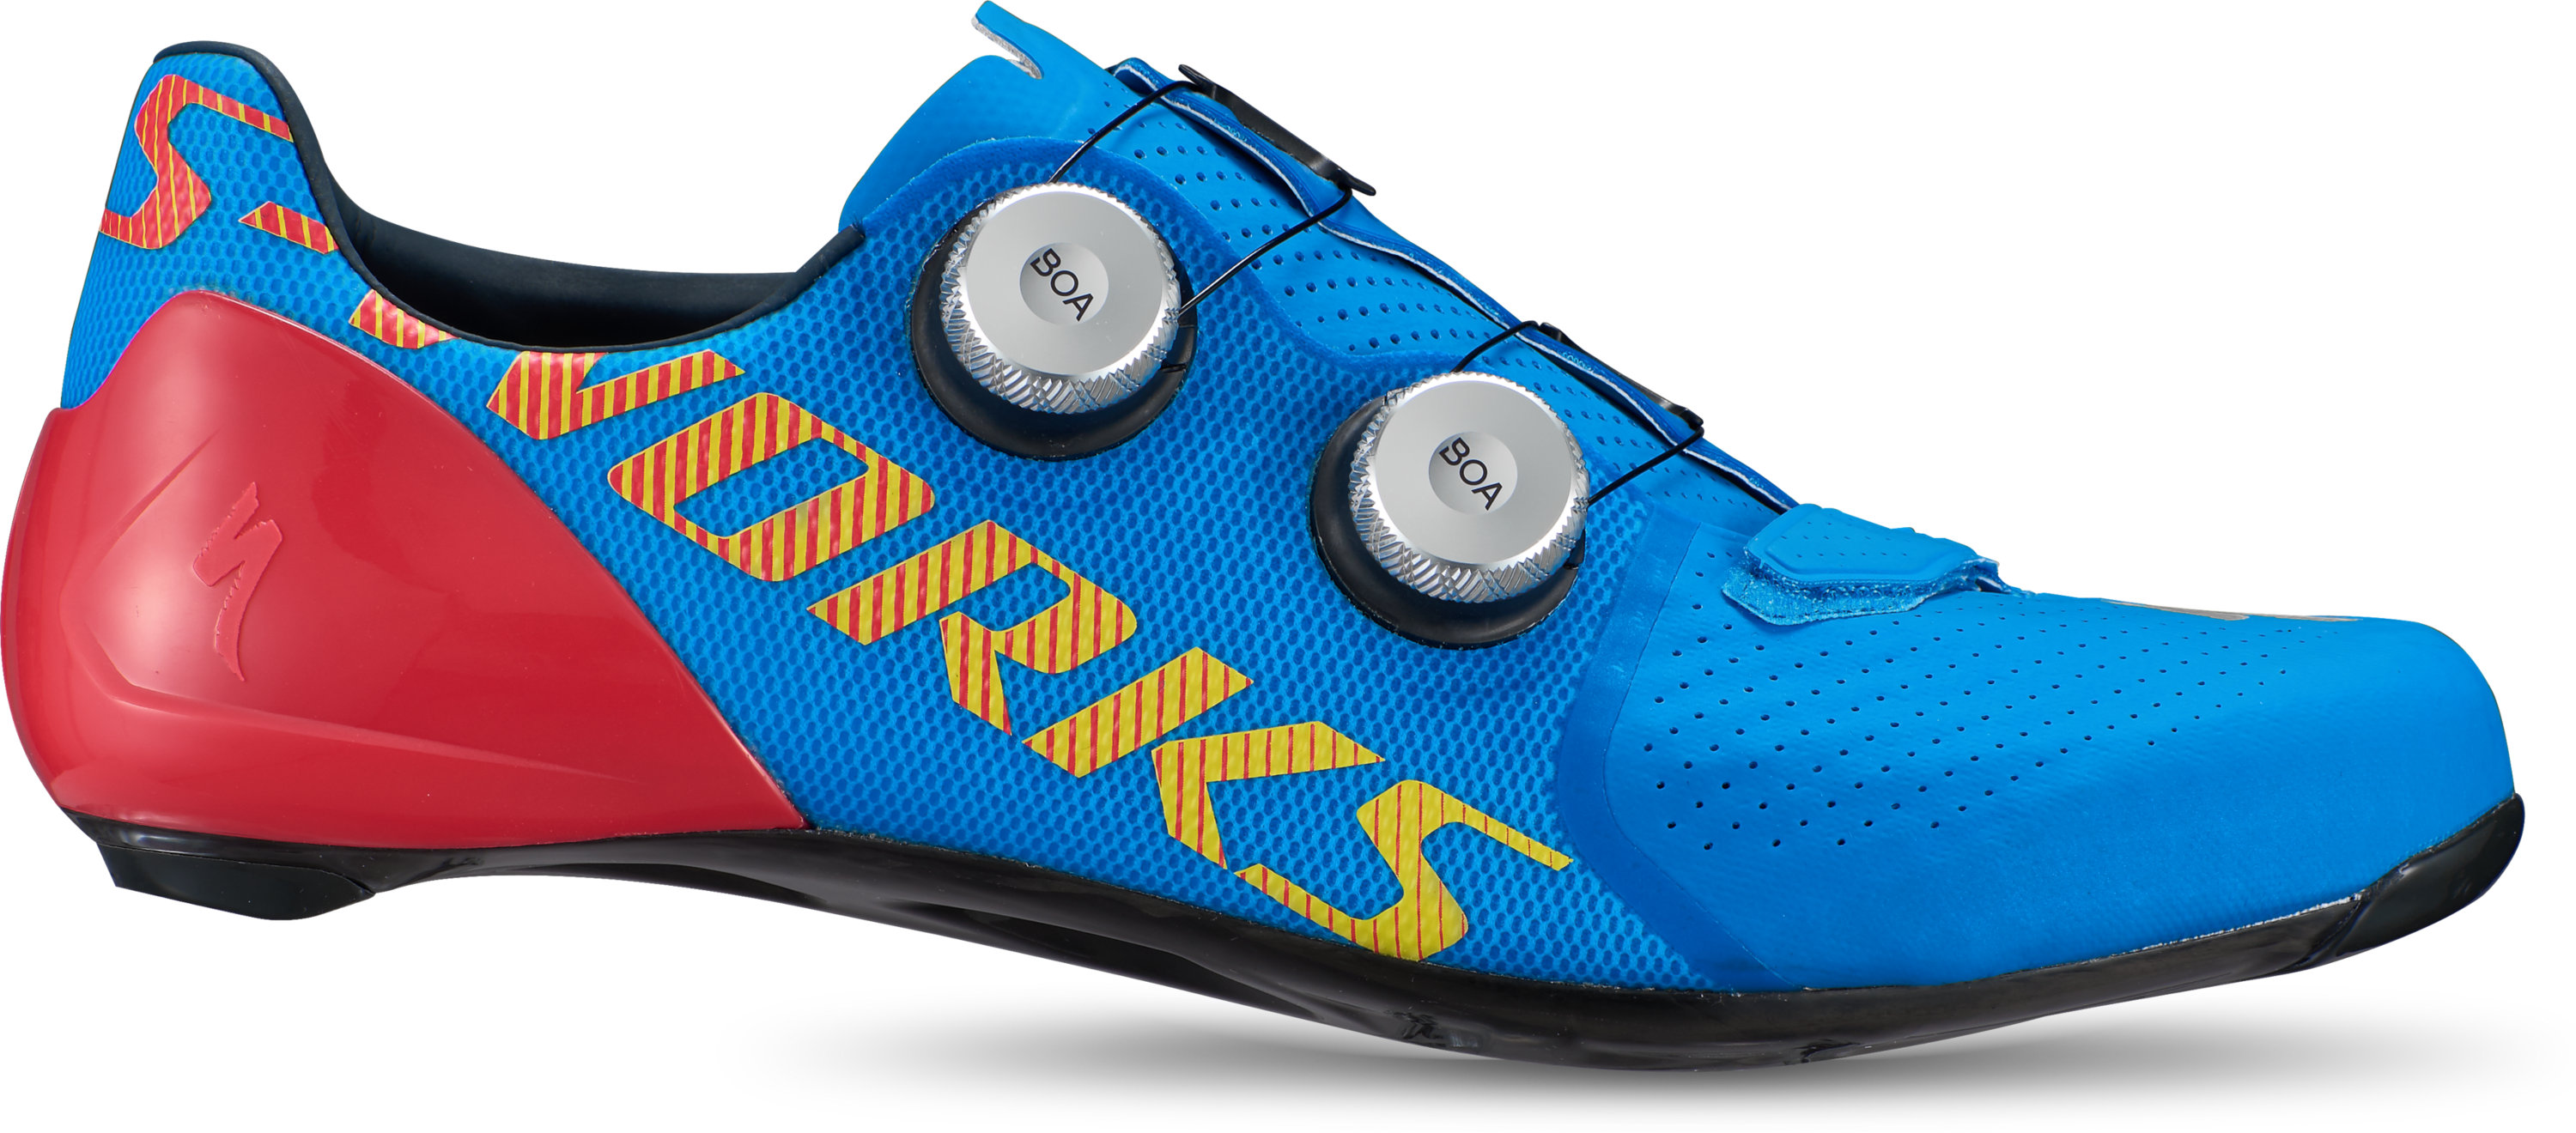 Team Blue//Black Select Size Specialized S-Works Road Shoes NEW